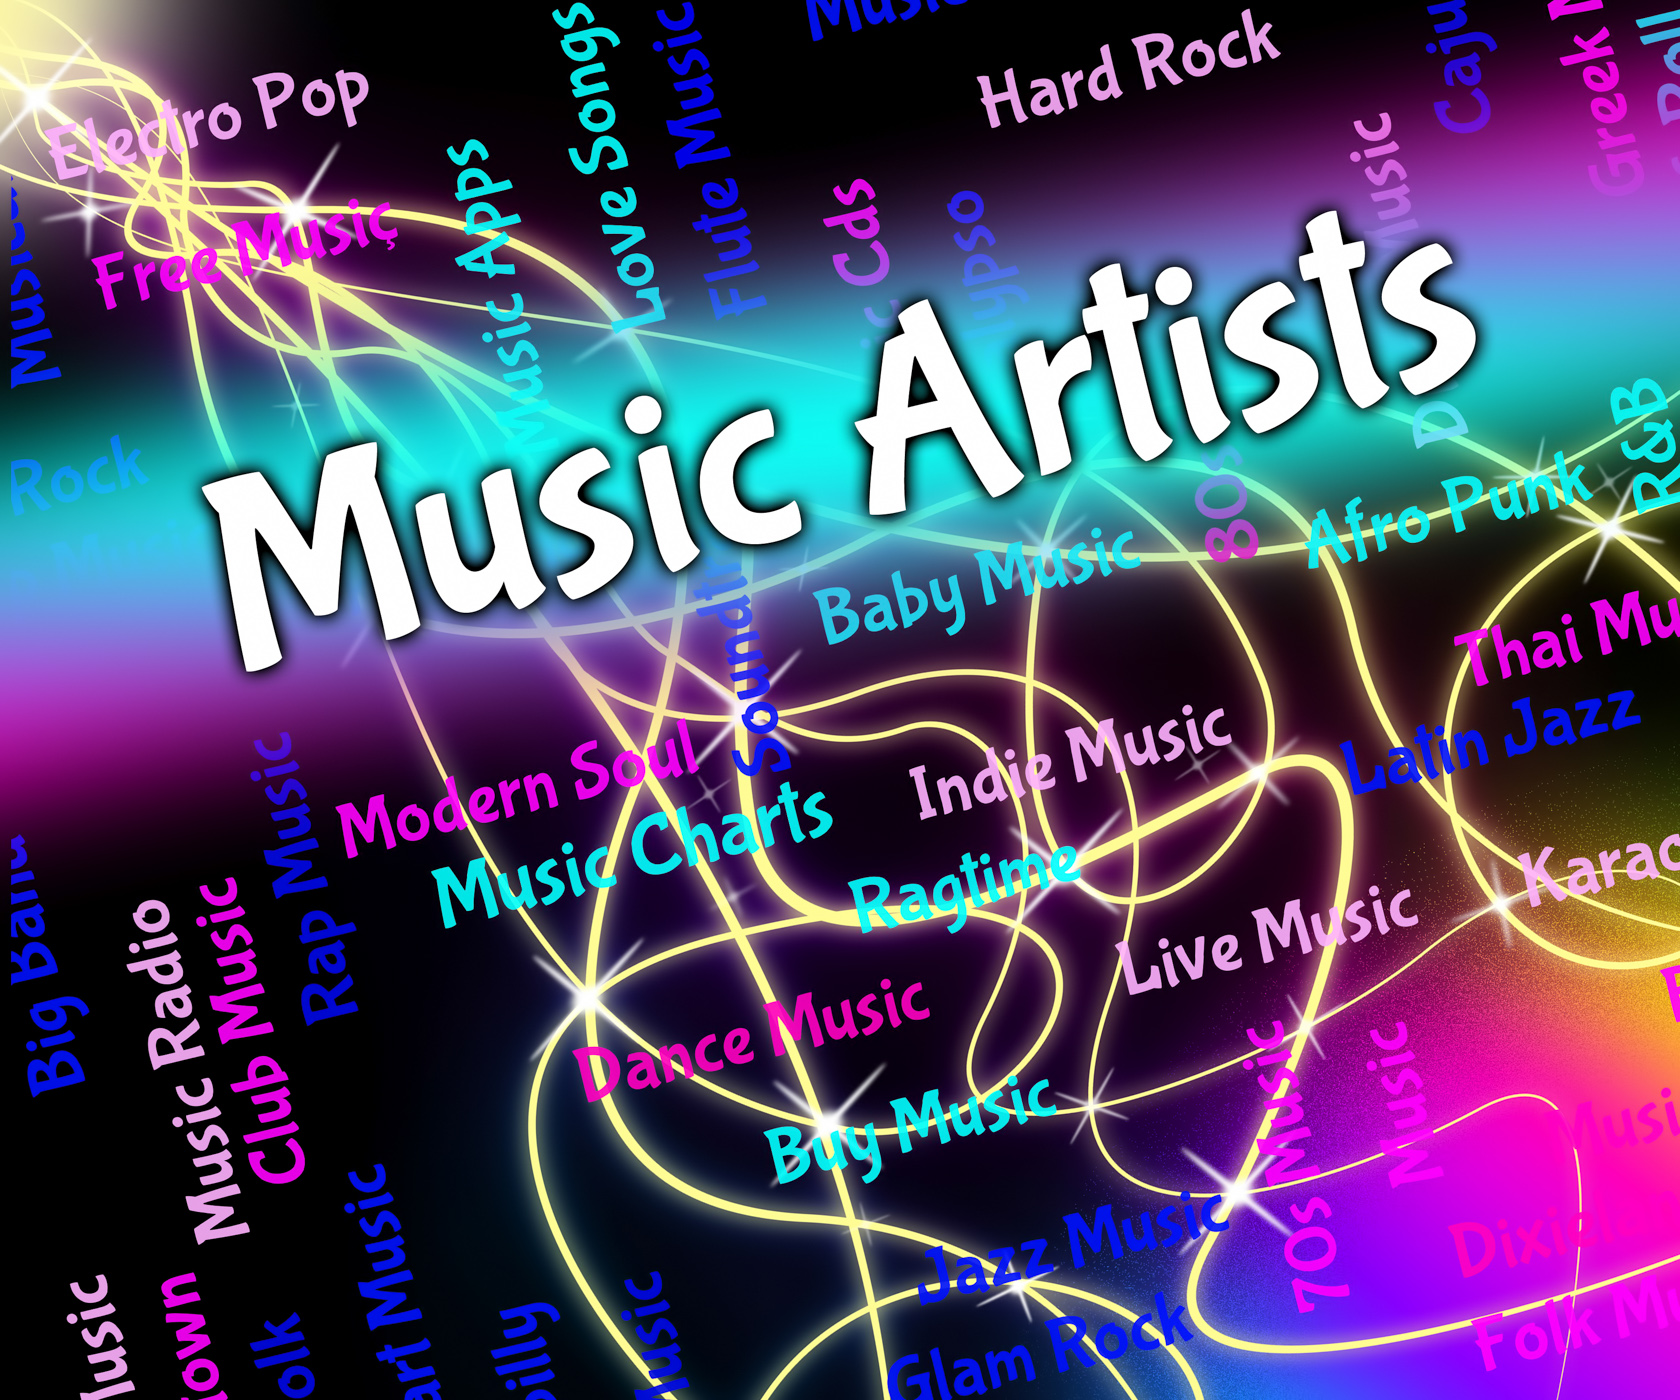 Music artists represents sound track and acoustic photo